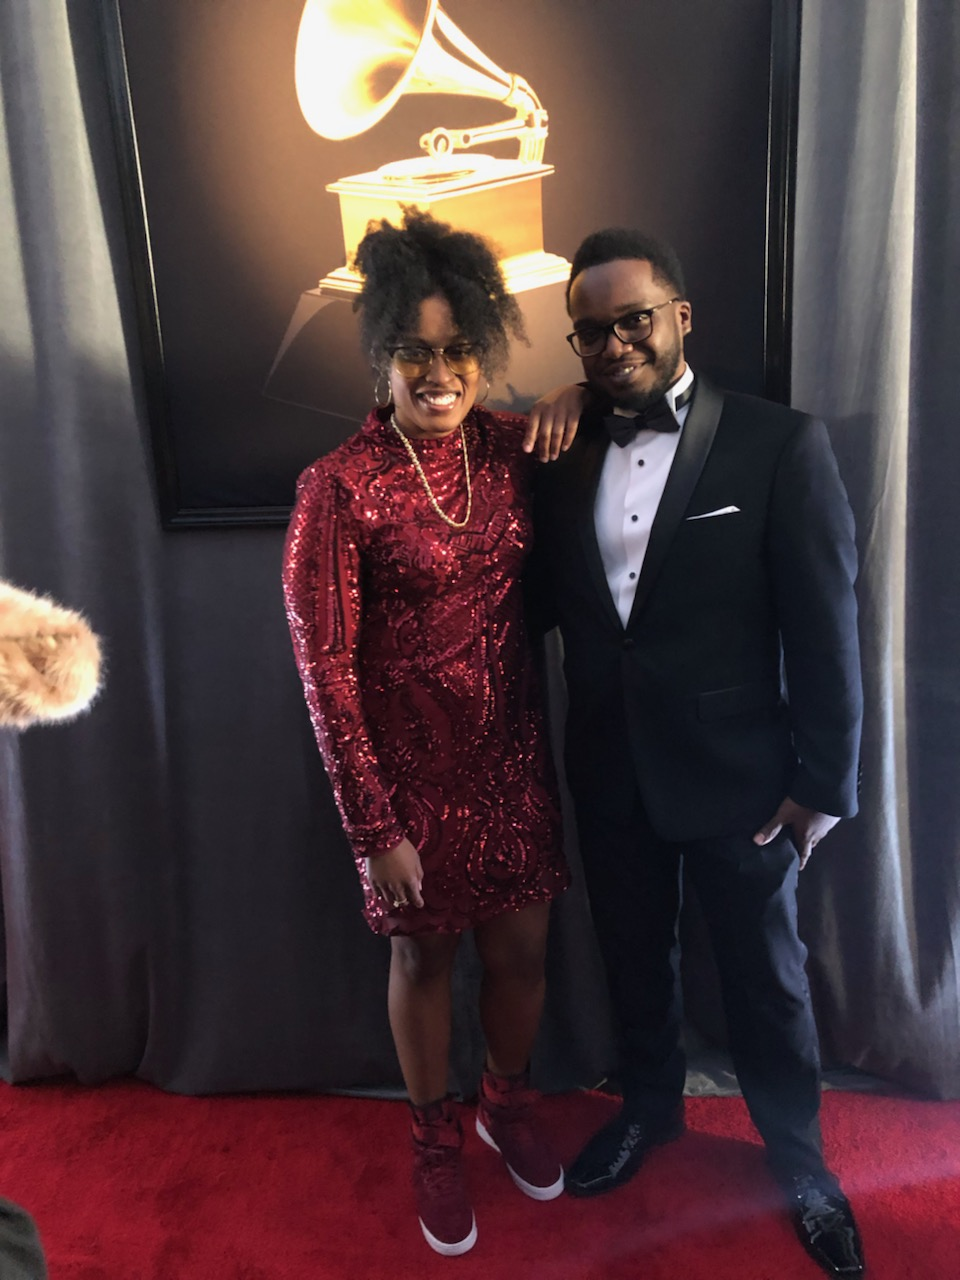 Ayanna Depas and Shamel Hughes attending the Grammy Awards in Los Angeles